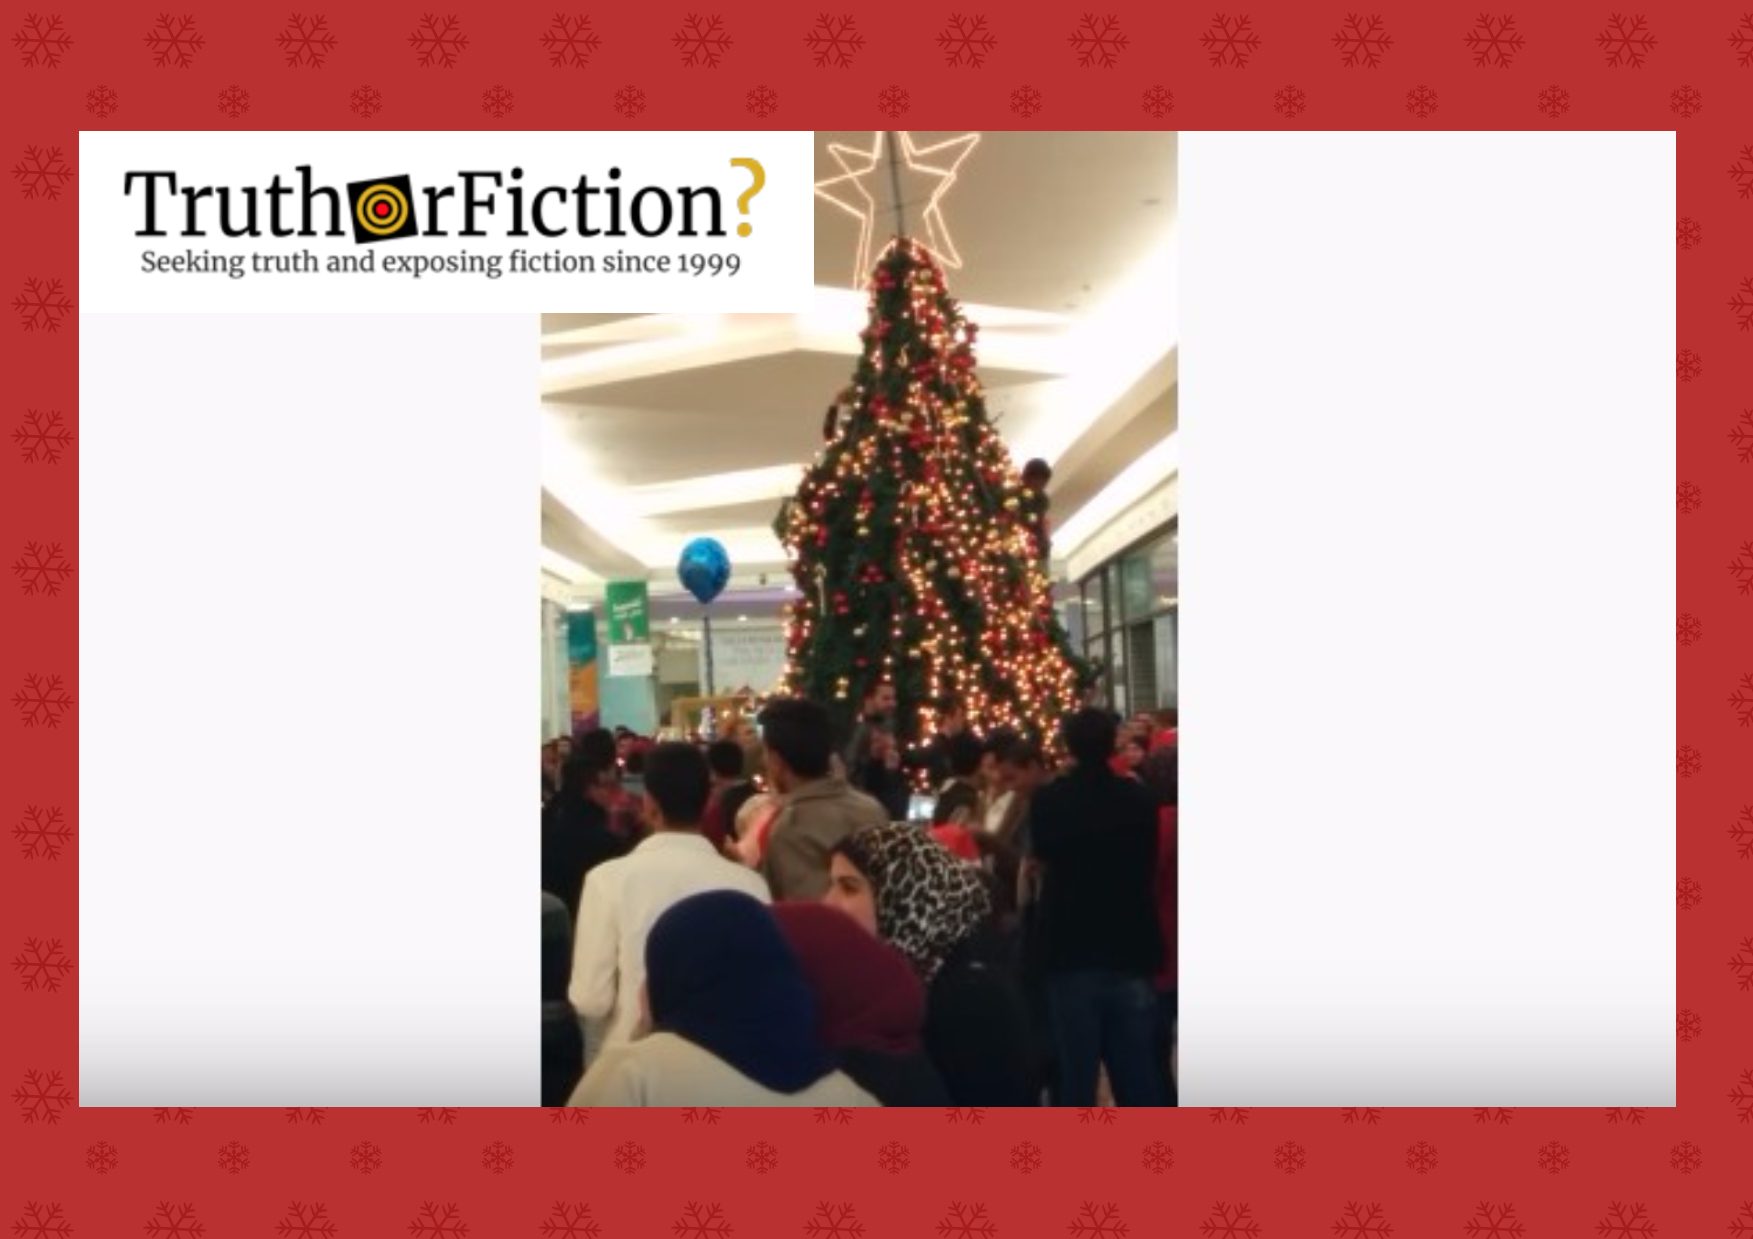 Muslims Attack Christmas Tree in Mall?